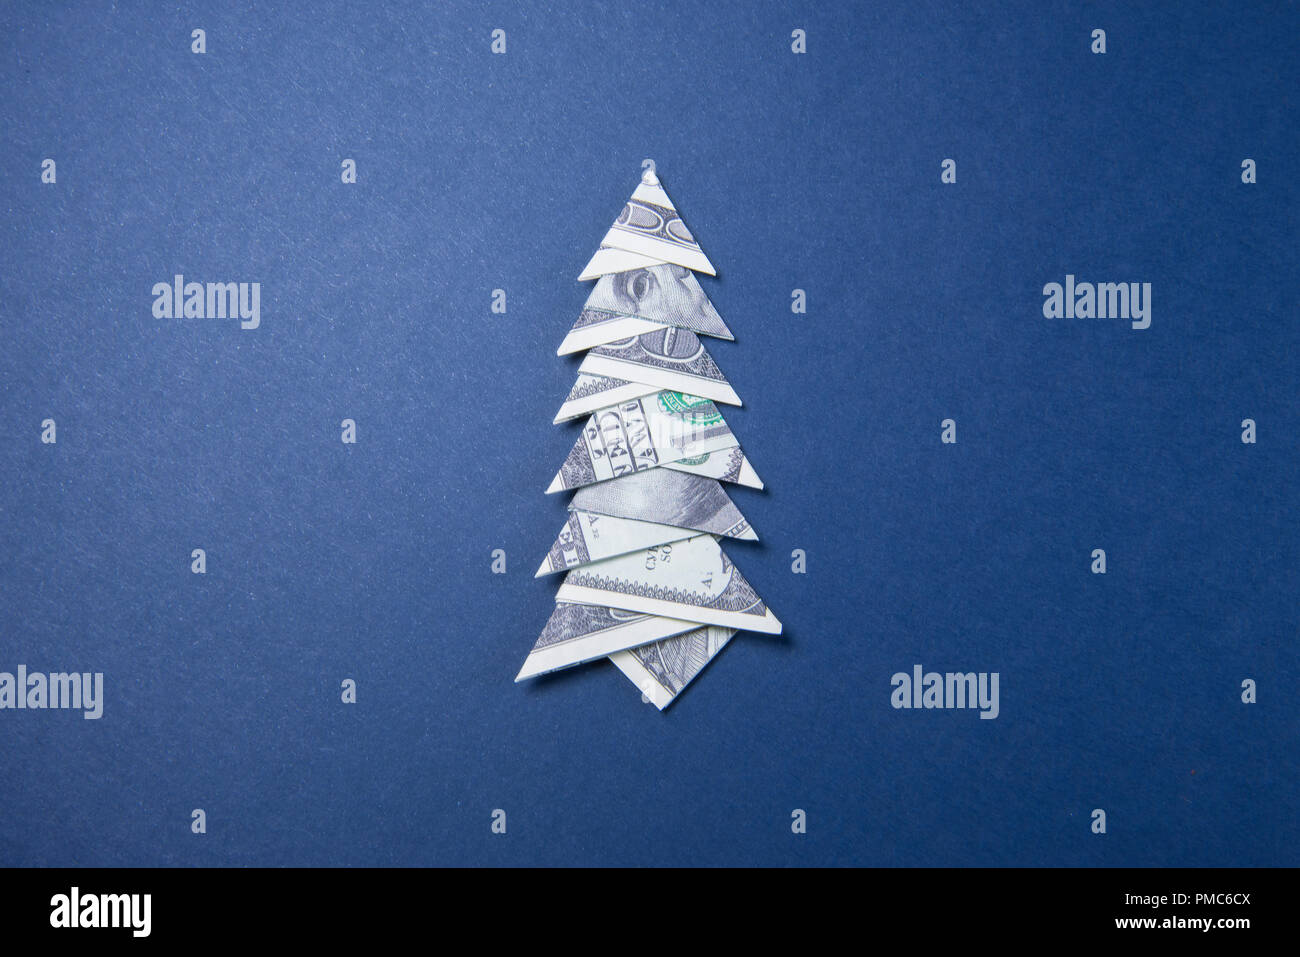 how to make an origami christmas tree with a dollar bill - Google ... | 957x1300